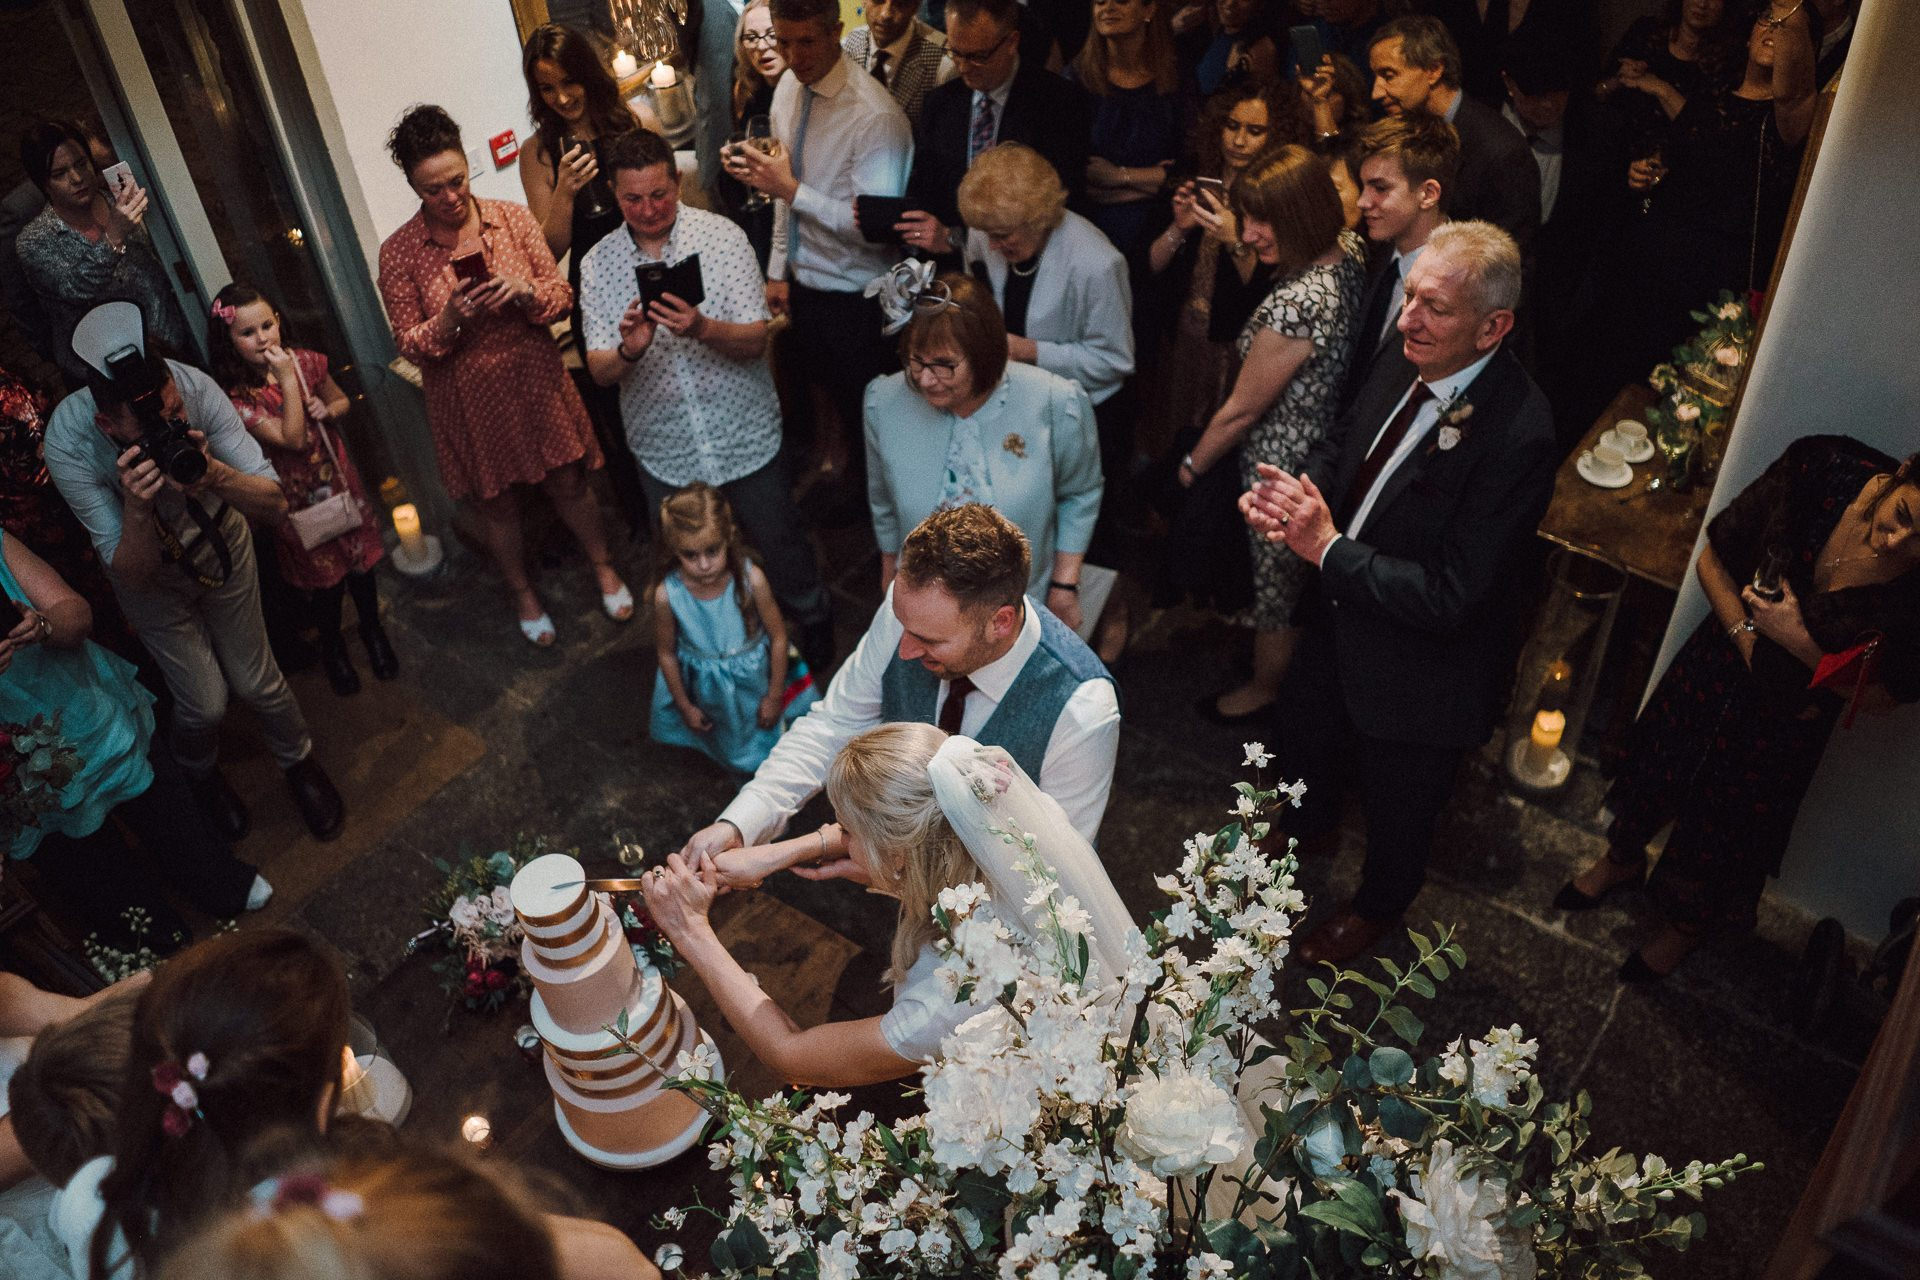 0125-DEVON-SOMERSET-WEDDING-PHOTOGRAPHER-0653-BEST-OF-2019-LOUISE-MAY-DEVON-SOMERSET-WEDDING-PHOTOGRAPHY-20191019-19-08-40-LM101973